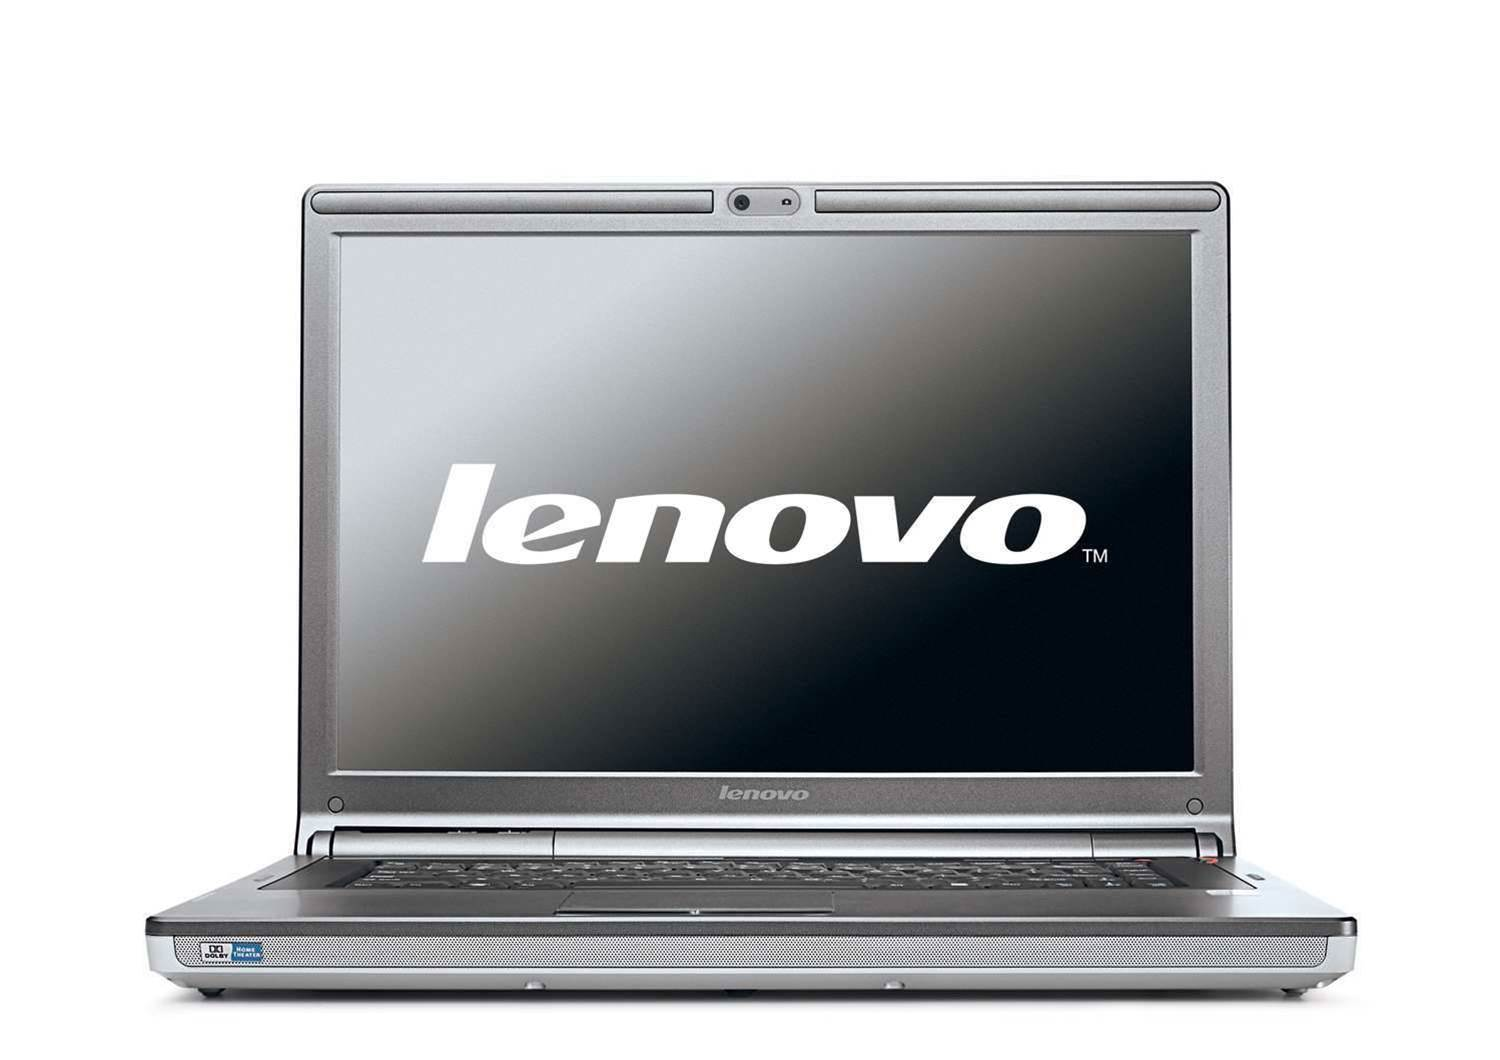 Lenovo reorganises brand to compete with Apple